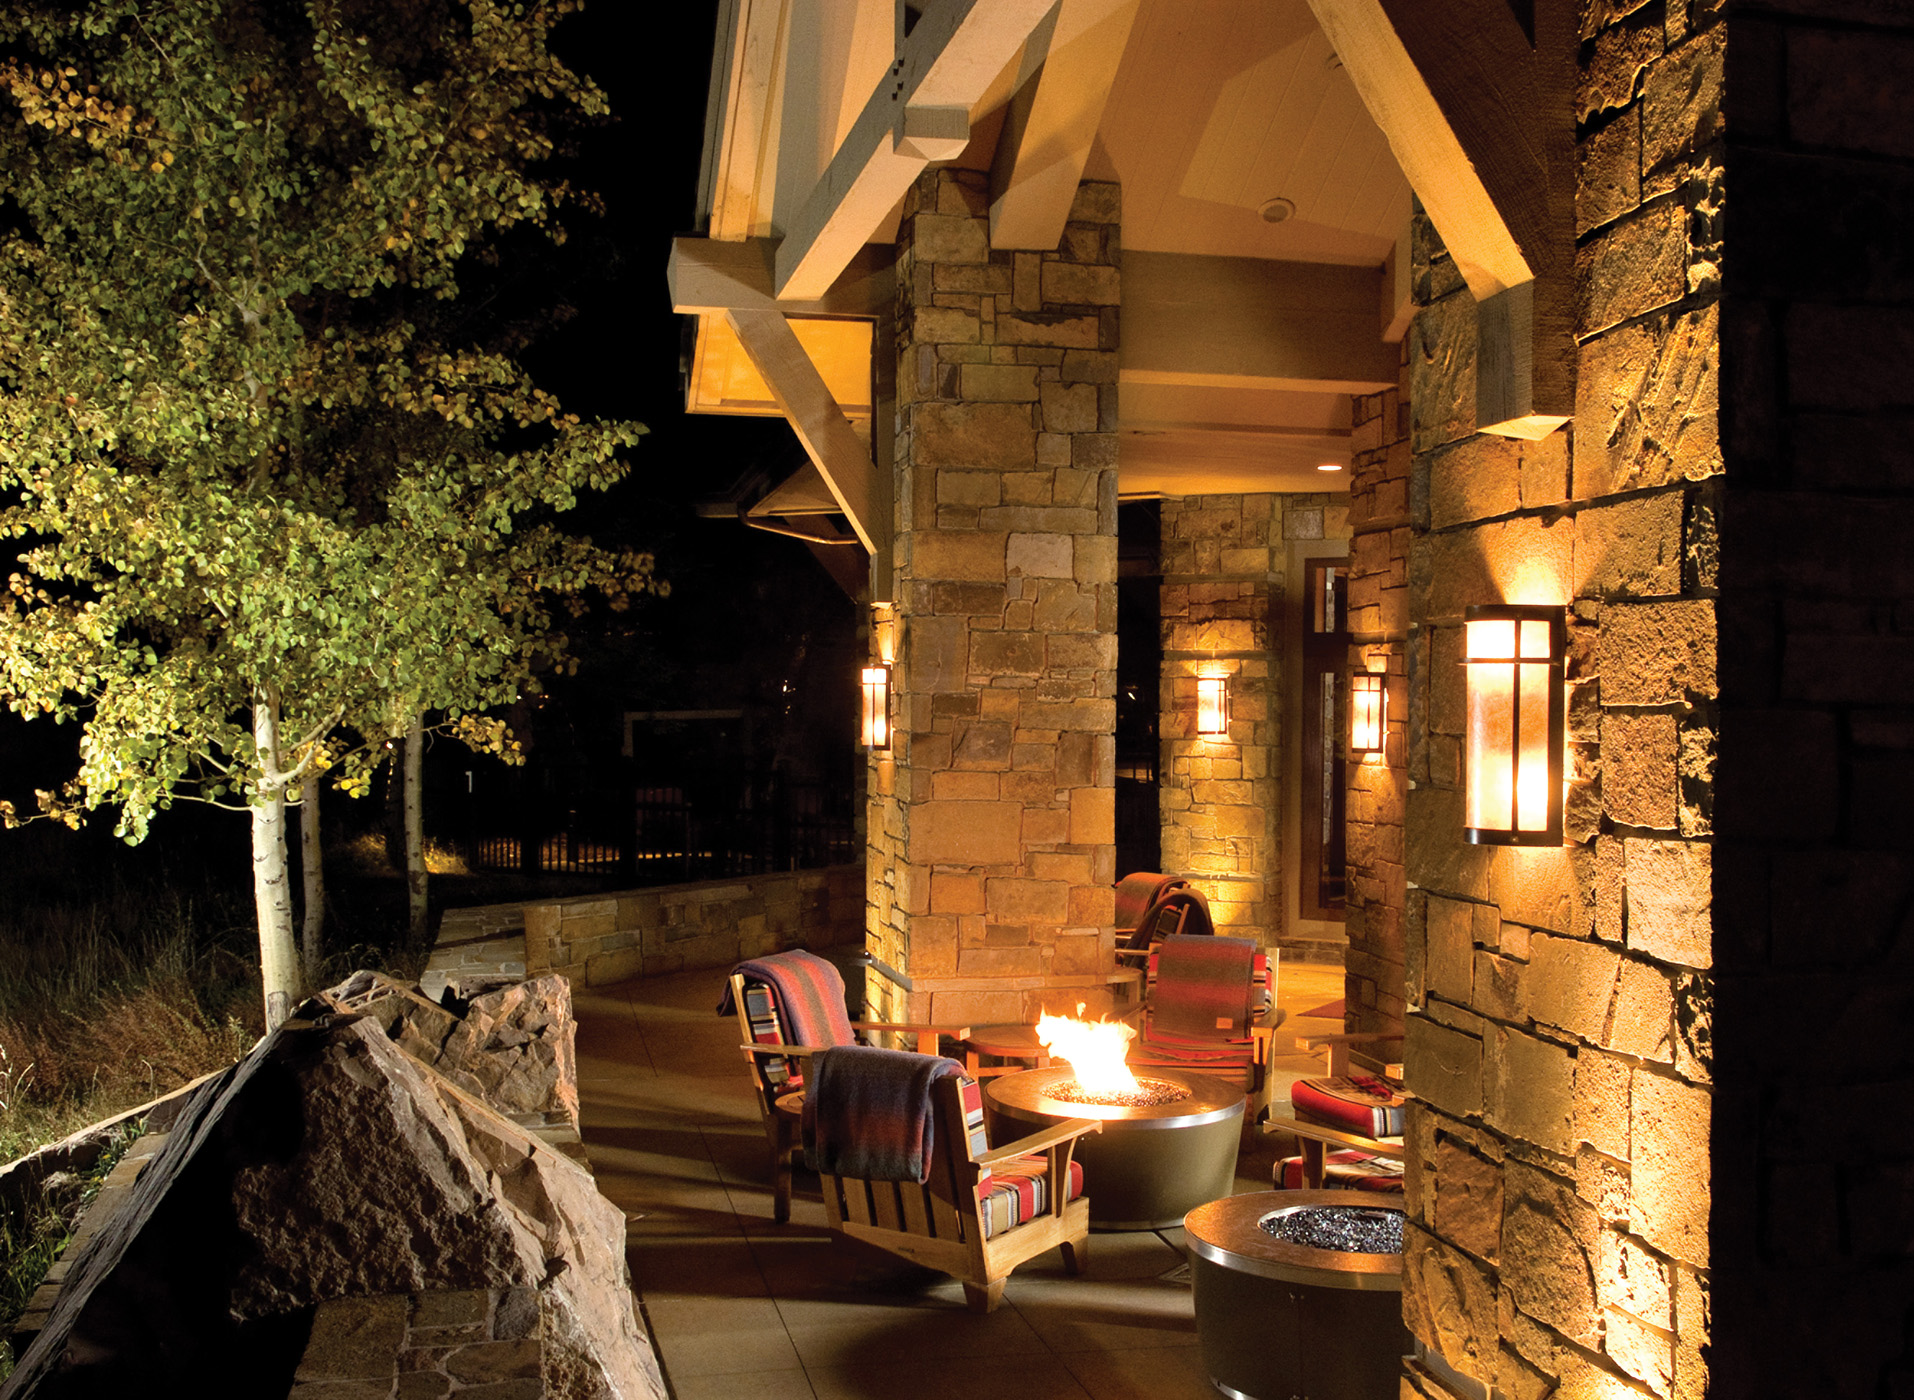 Fractional Ownership for Sale at Residence Club Interest in the Four Seasons 7680 Granite Loop Road, Unit 751 Teton Village, Wyoming, 83025 United States